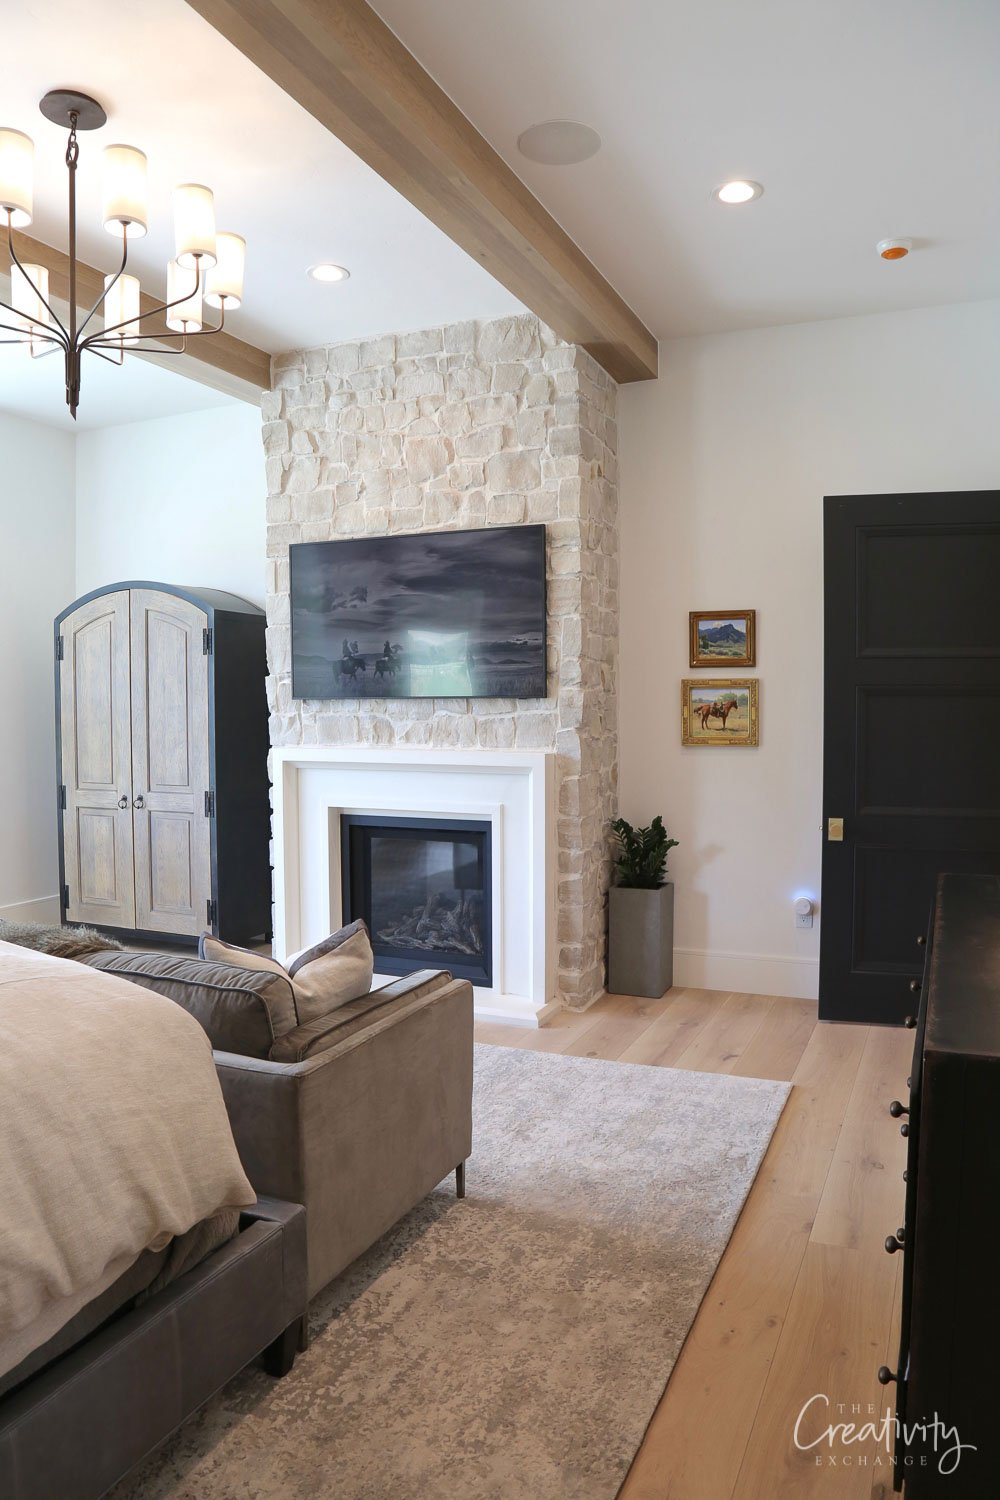 Primary Bedroom with stone fireplace